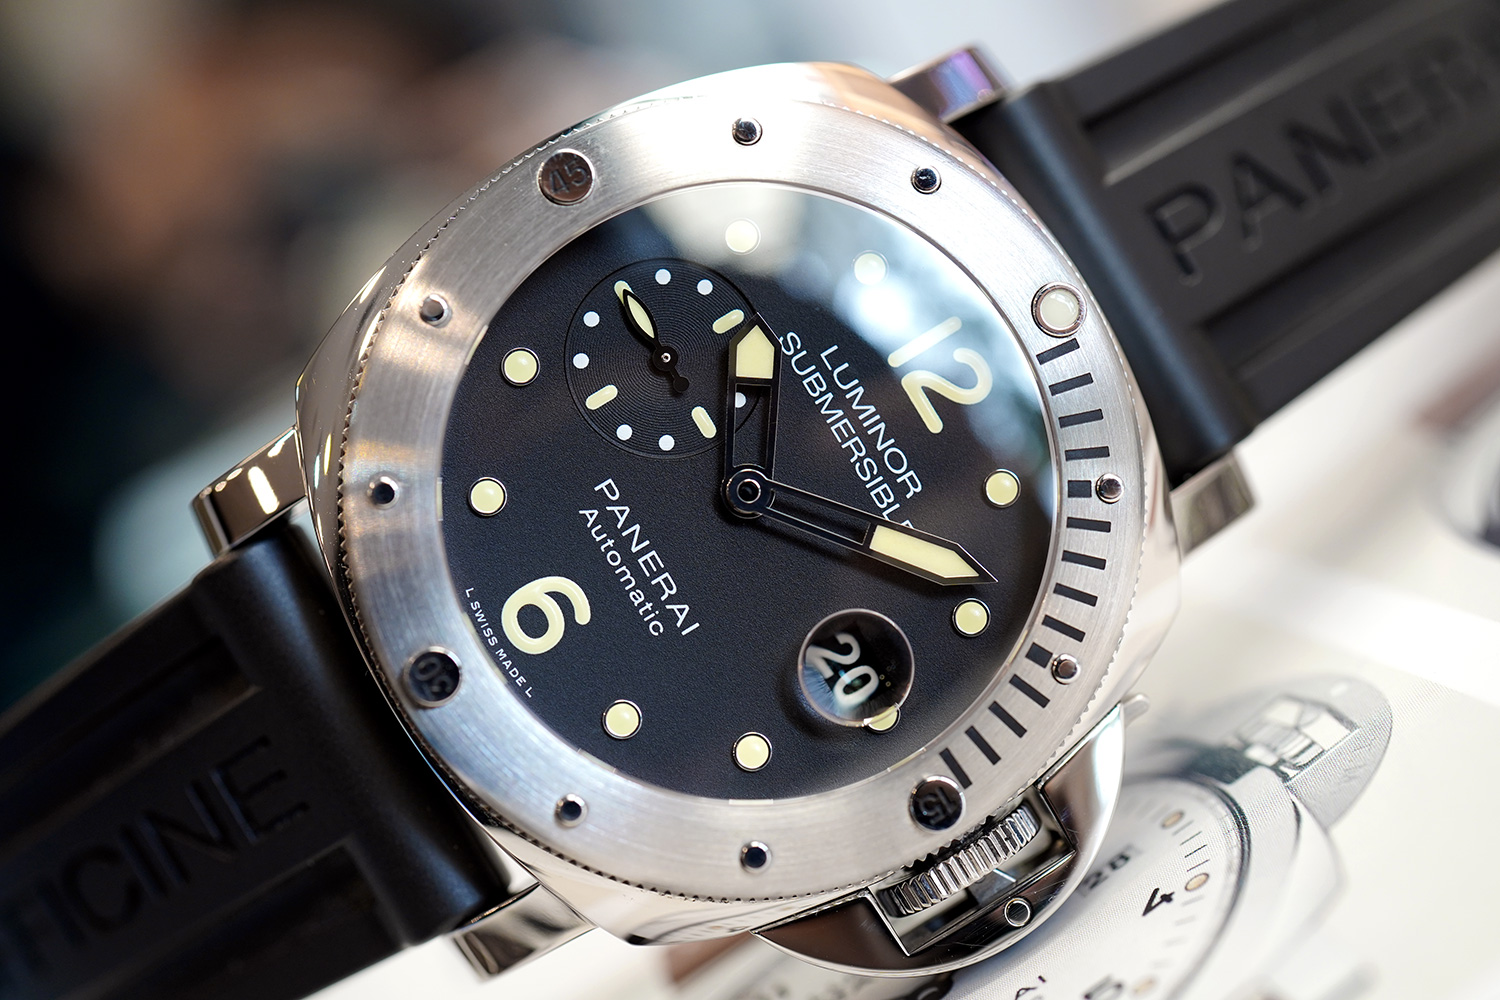 Panerai 1024 Luminor Submersible Automatic 44 Mm S.T (03